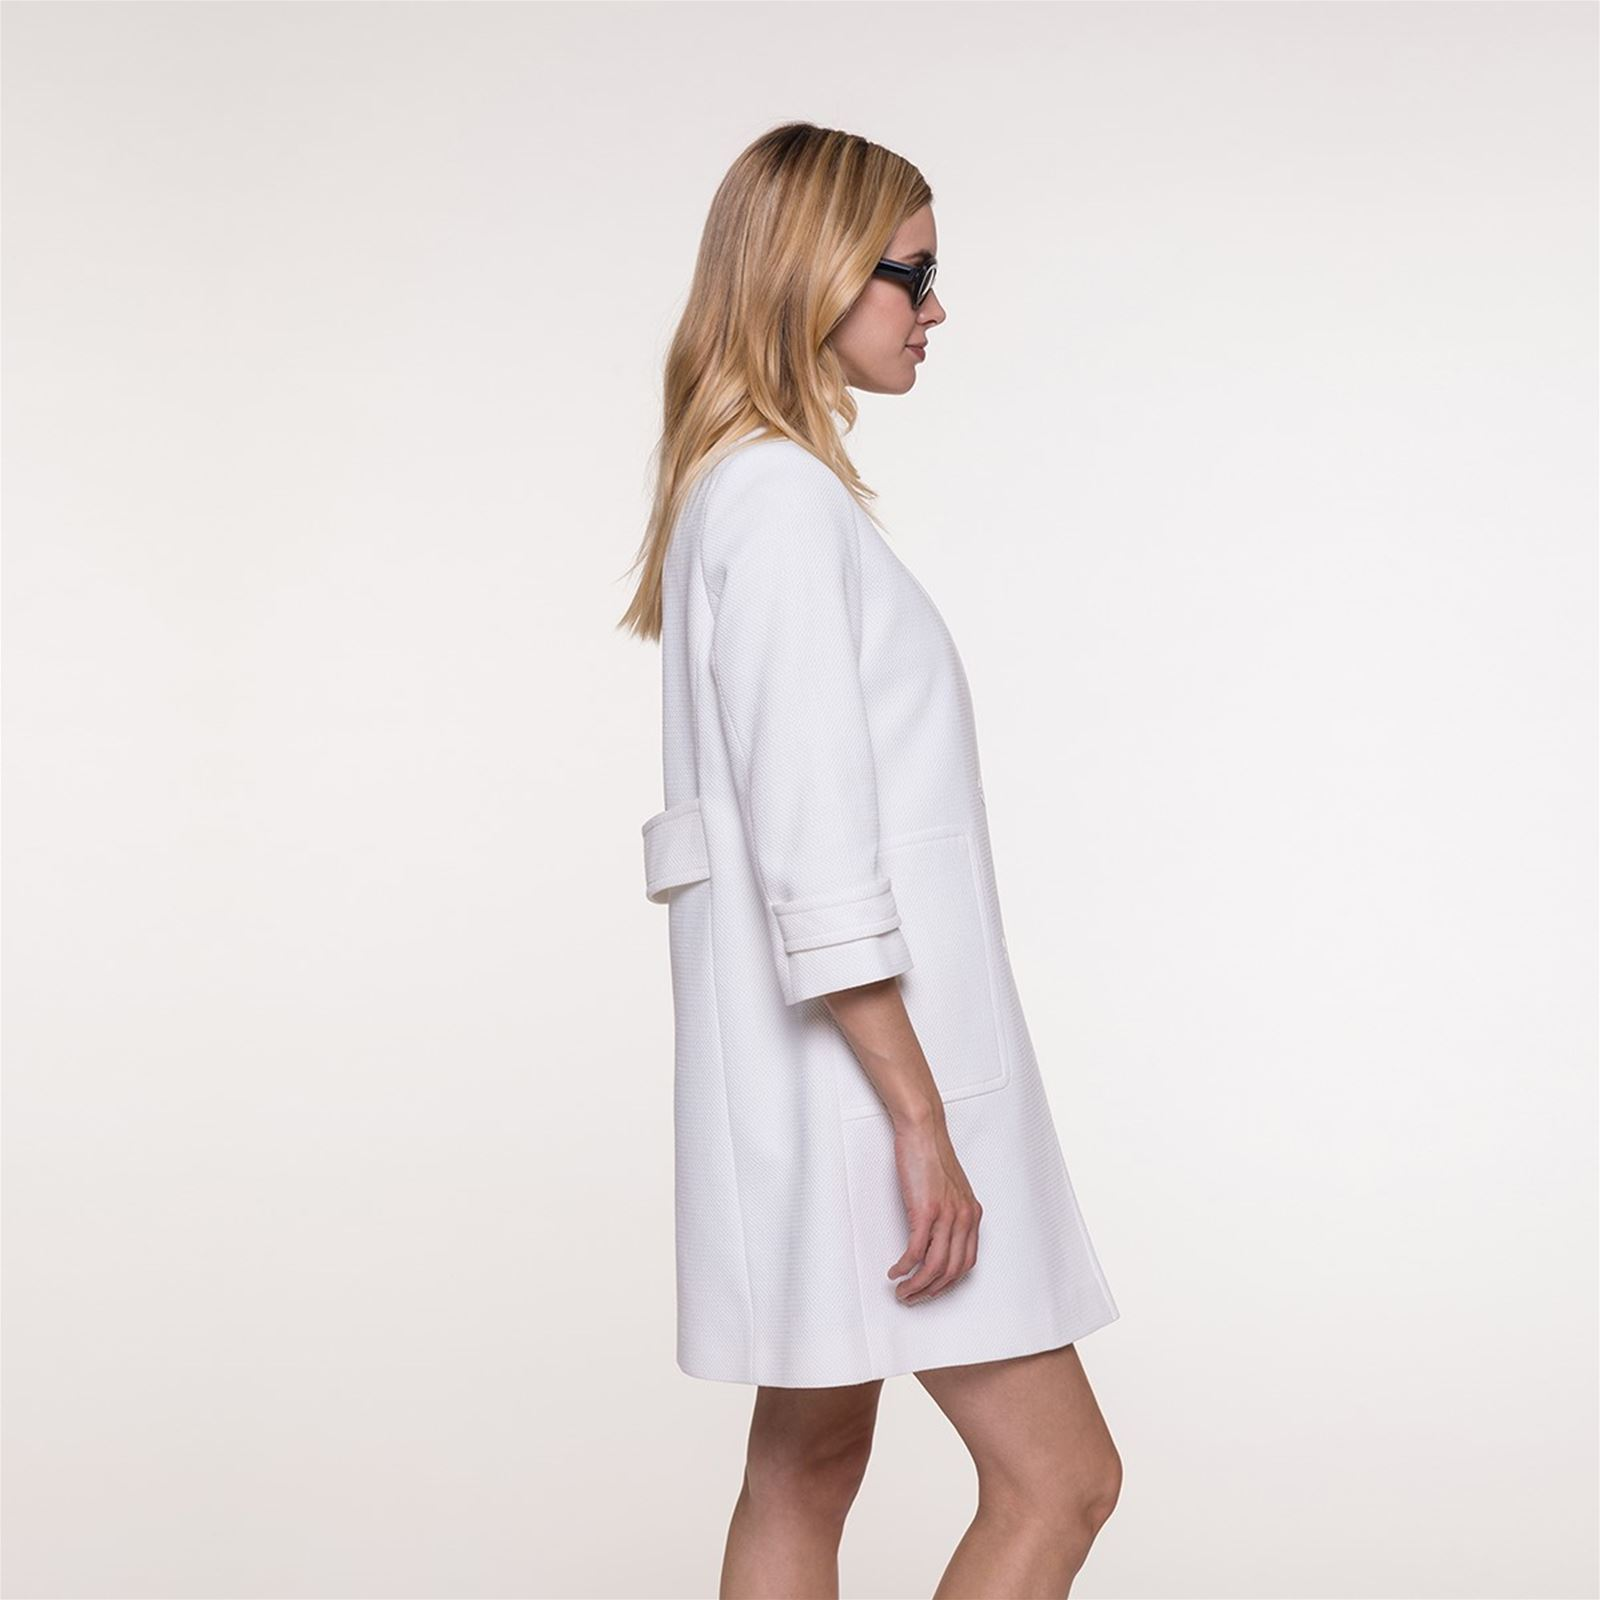 Coton Brandalley Blanc De Coat En Col Trench Sans Piqué And Manteau 6PvqP8A